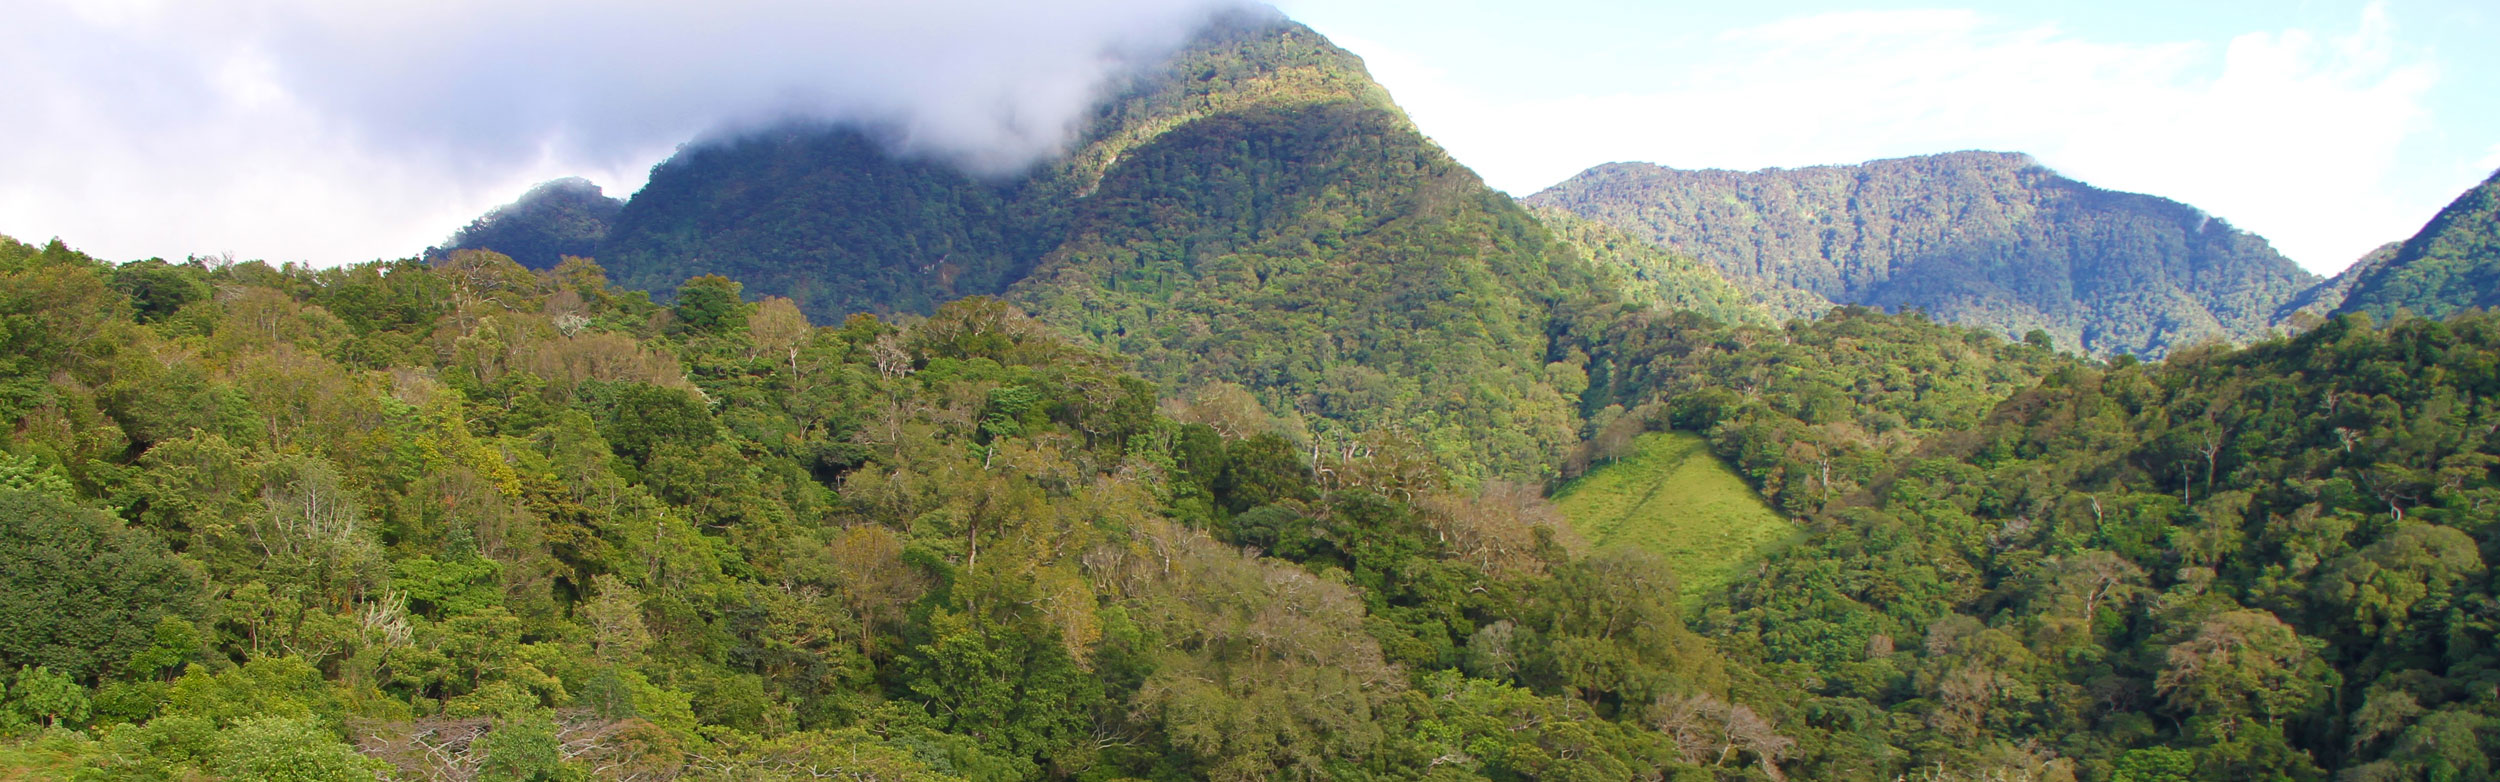 Mount Totumas Cloud Forest Lodge